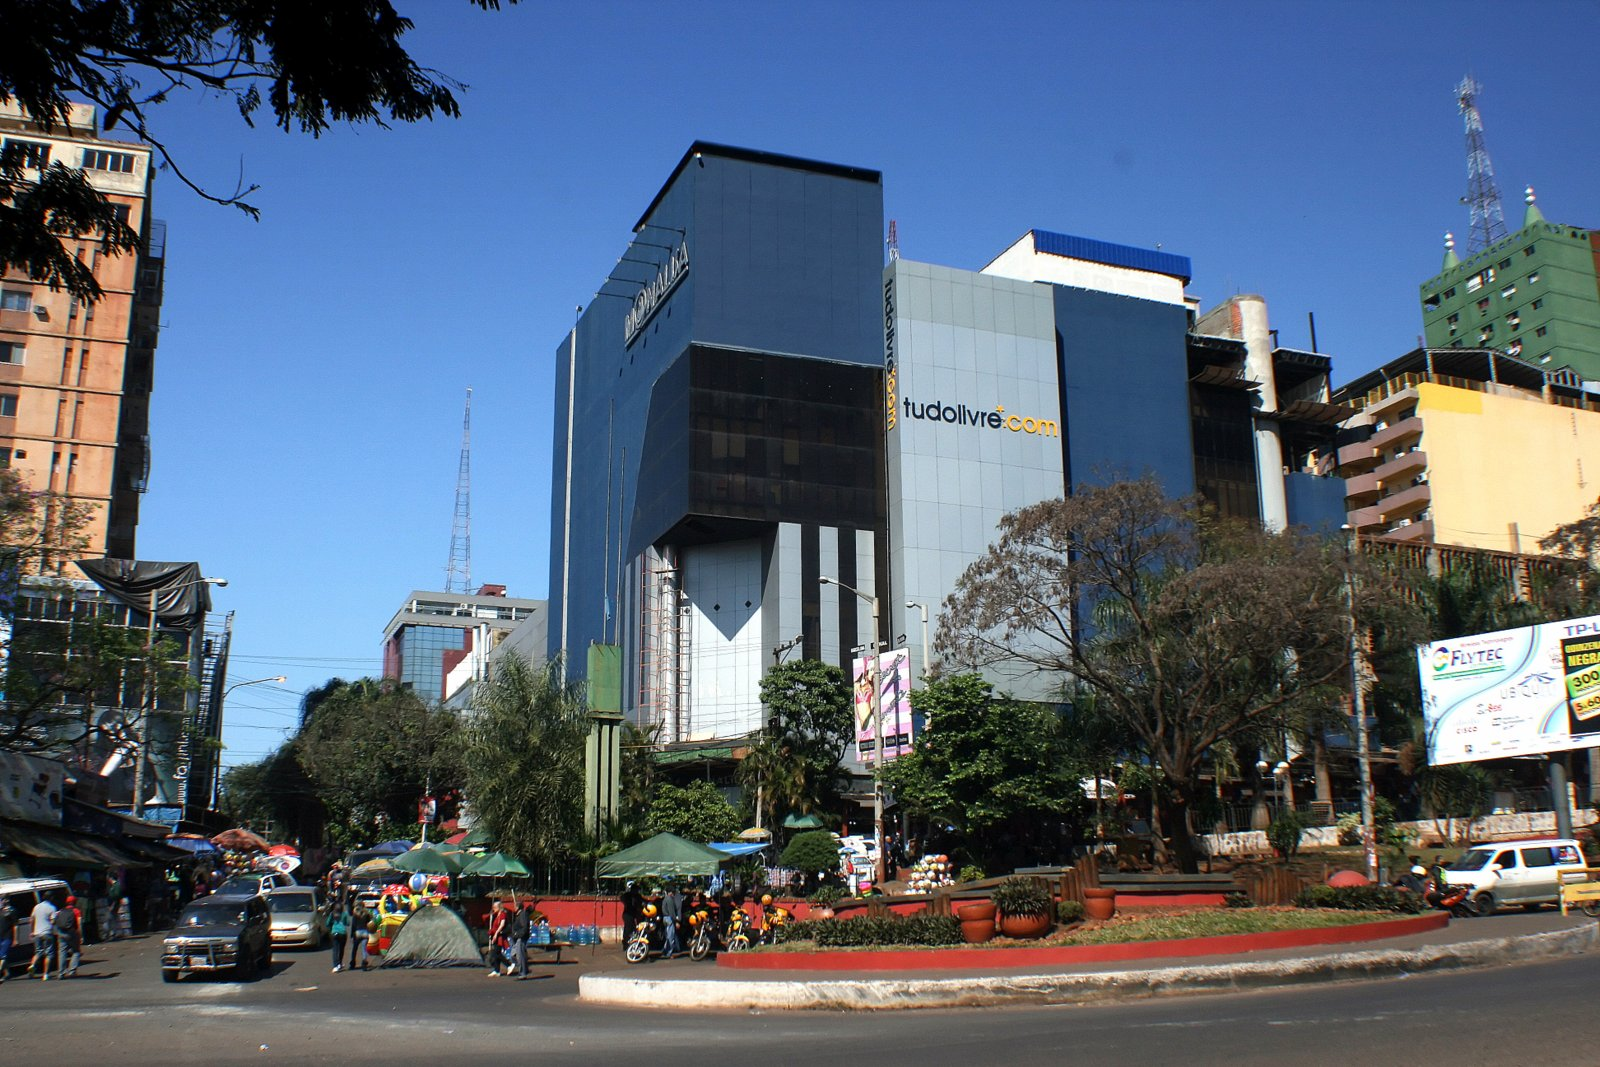 ciudad del este girls Book your tickets online for the top things to do in ciudad del este, paraguay on tripadvisor: see 8,030 traveler reviews and photos of ciudad del este.